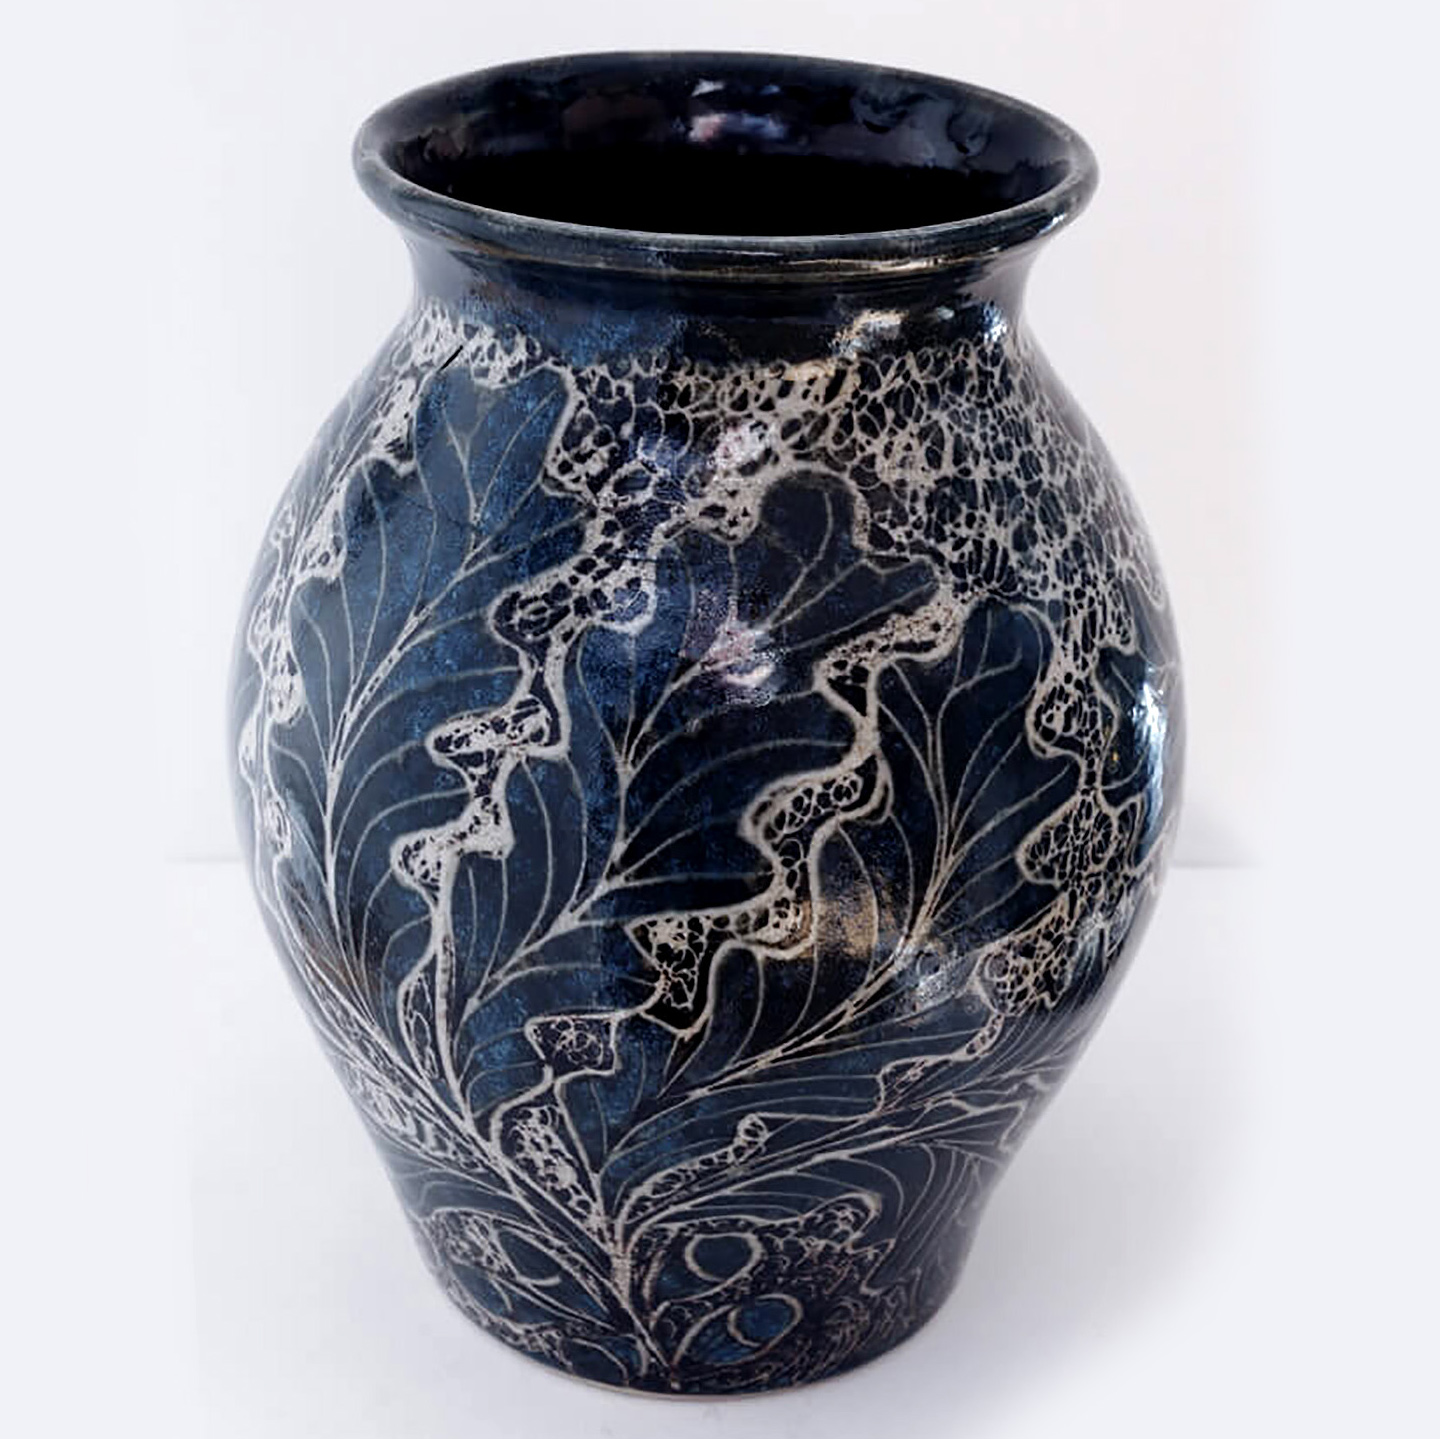 John M Egerton - Oak leaves vase Sq